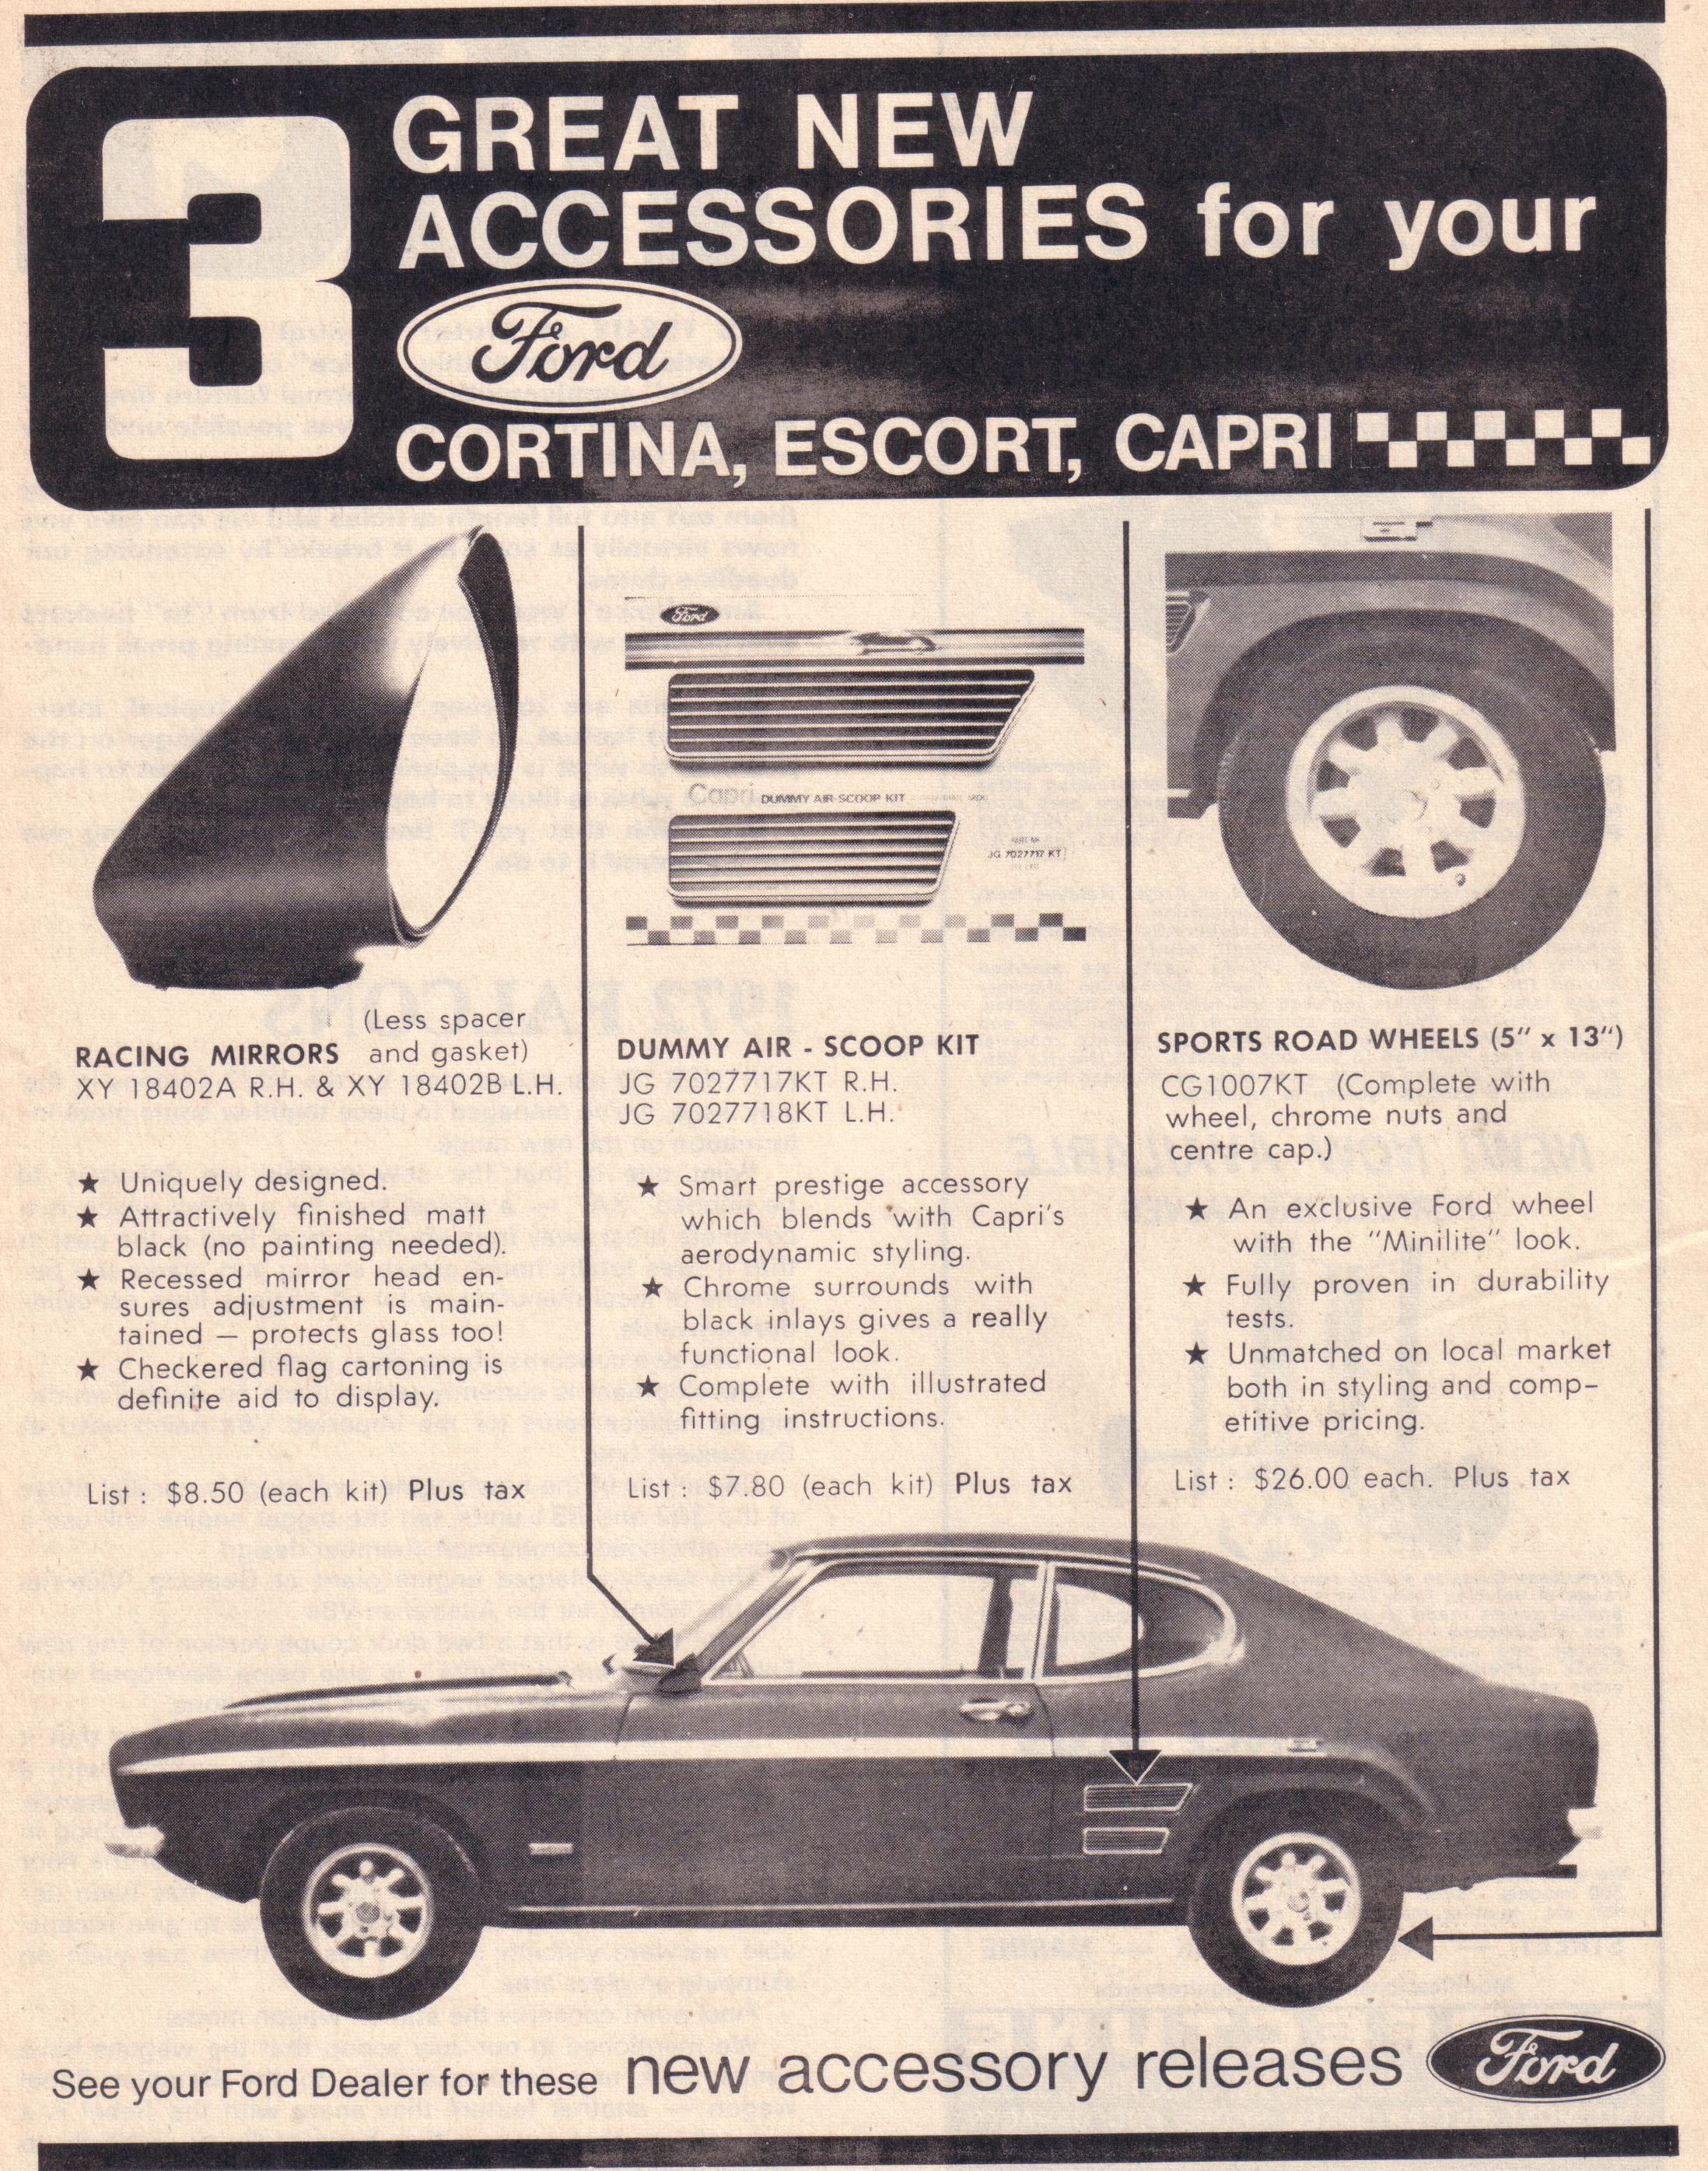 Great new accessories 1971